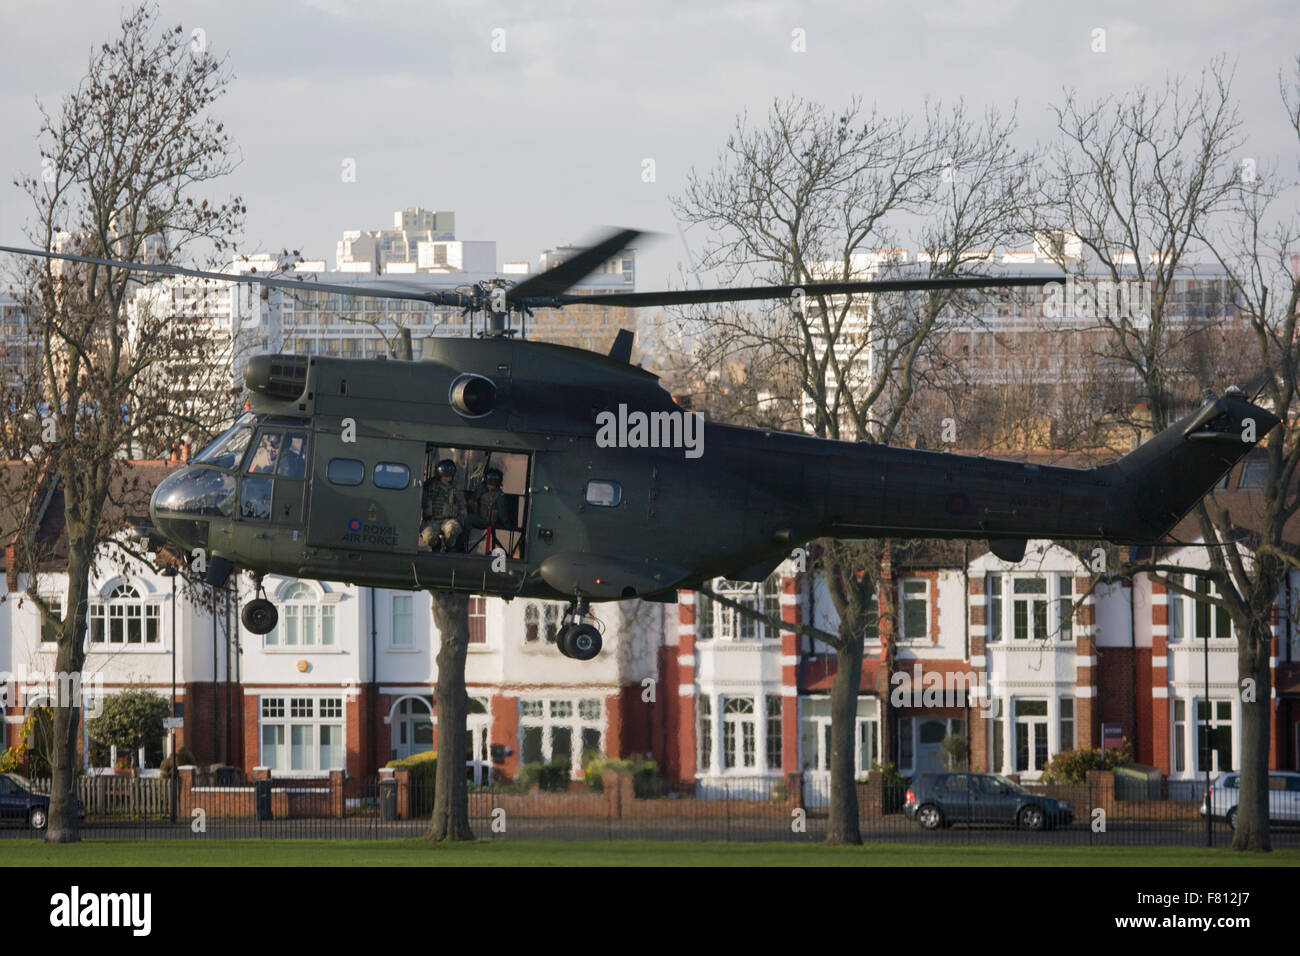 London, UK. 4th December, 2015. A Royal Air Force Puma troop-carrying helicopter lands in Ruskin Park in the south - Stock Image